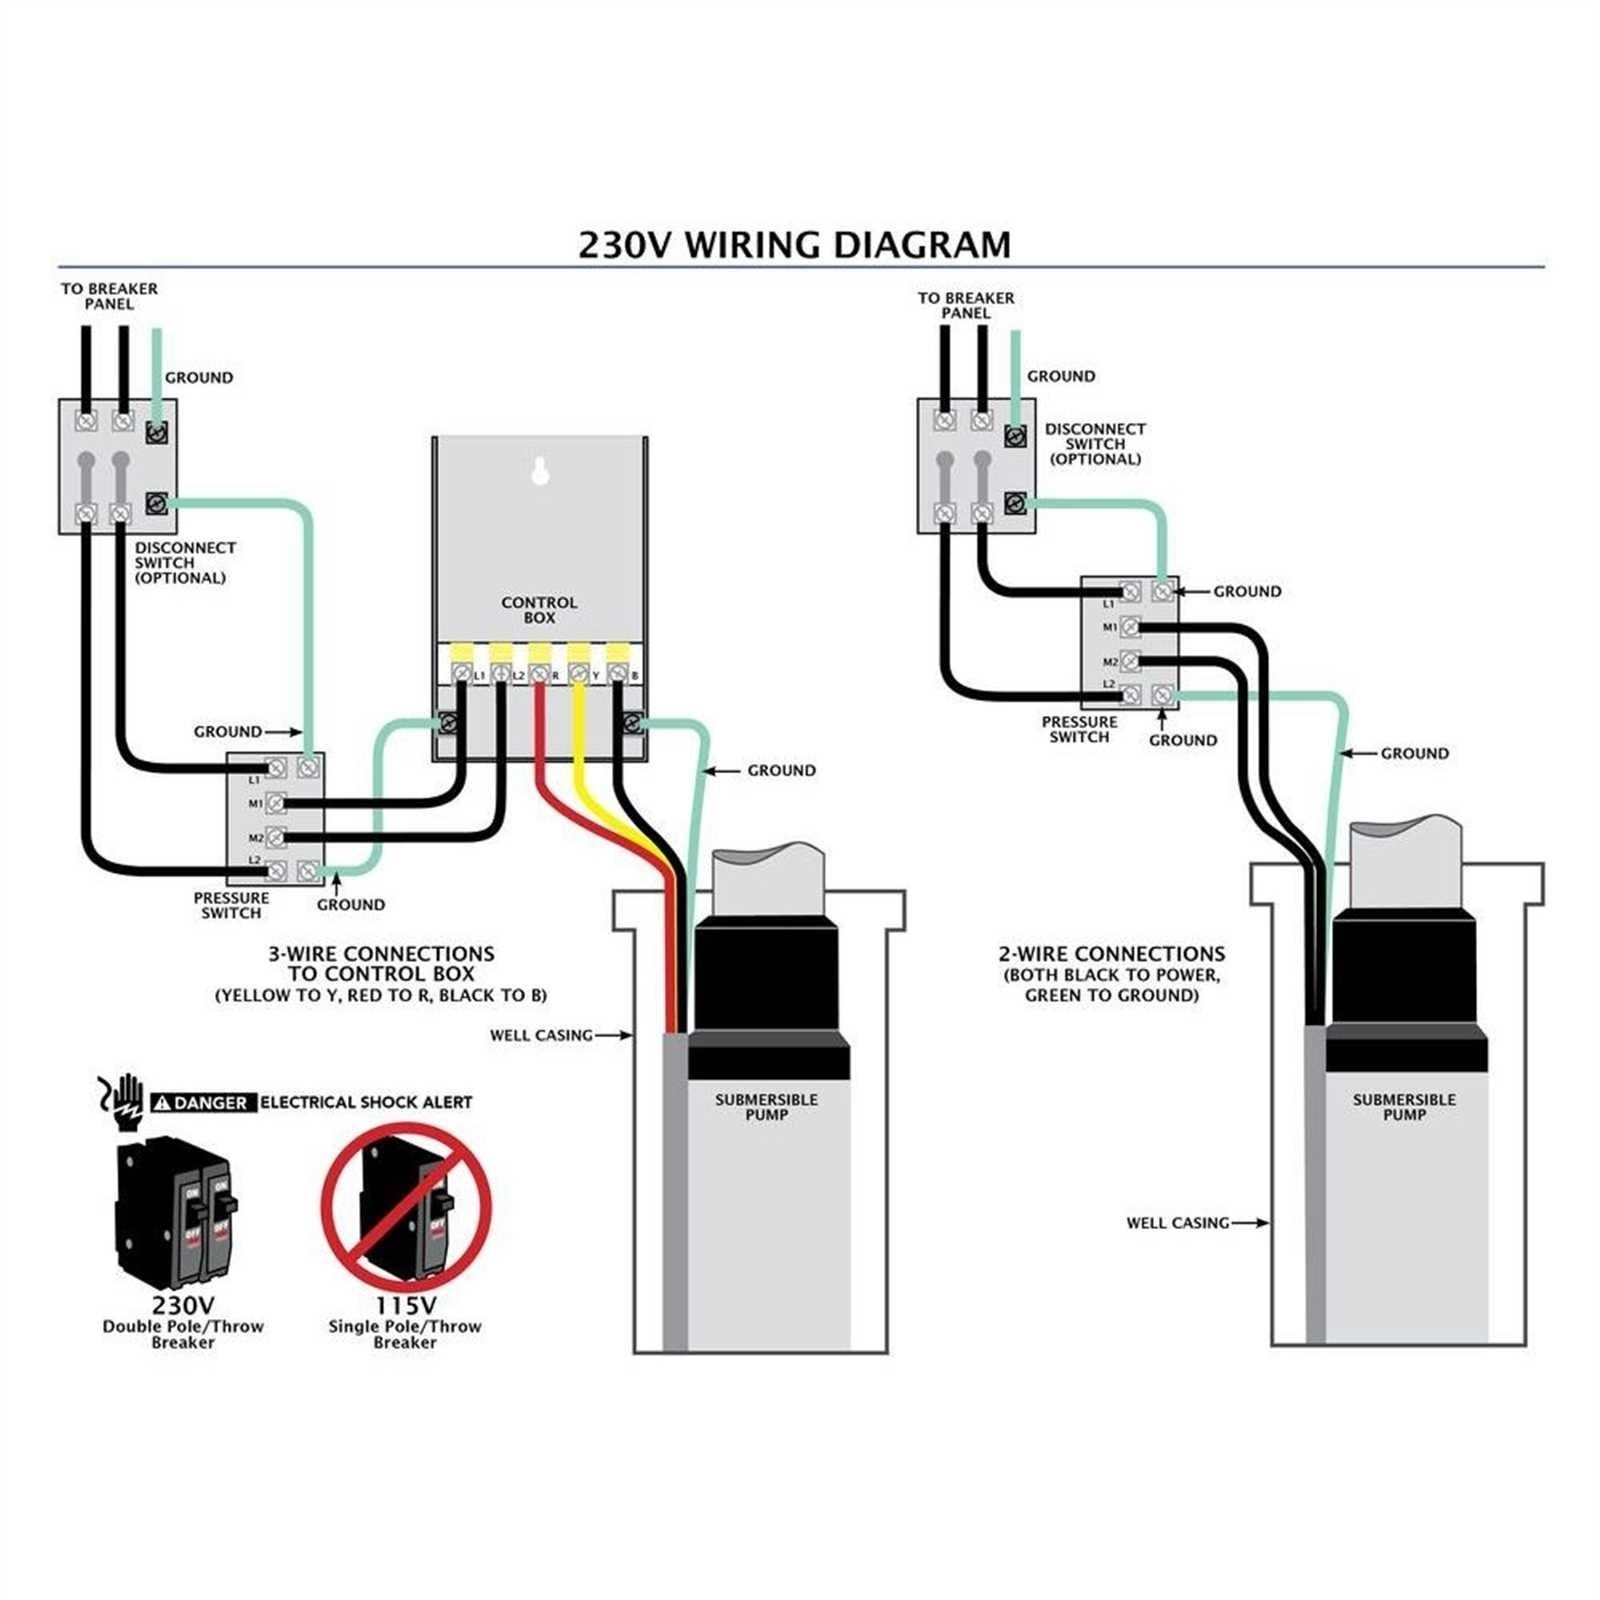 3 wire pump diagram 4 wire trolling motor to a 3 wire plug diagram 3 wire submersible pump wiring diagram | free wiring diagram